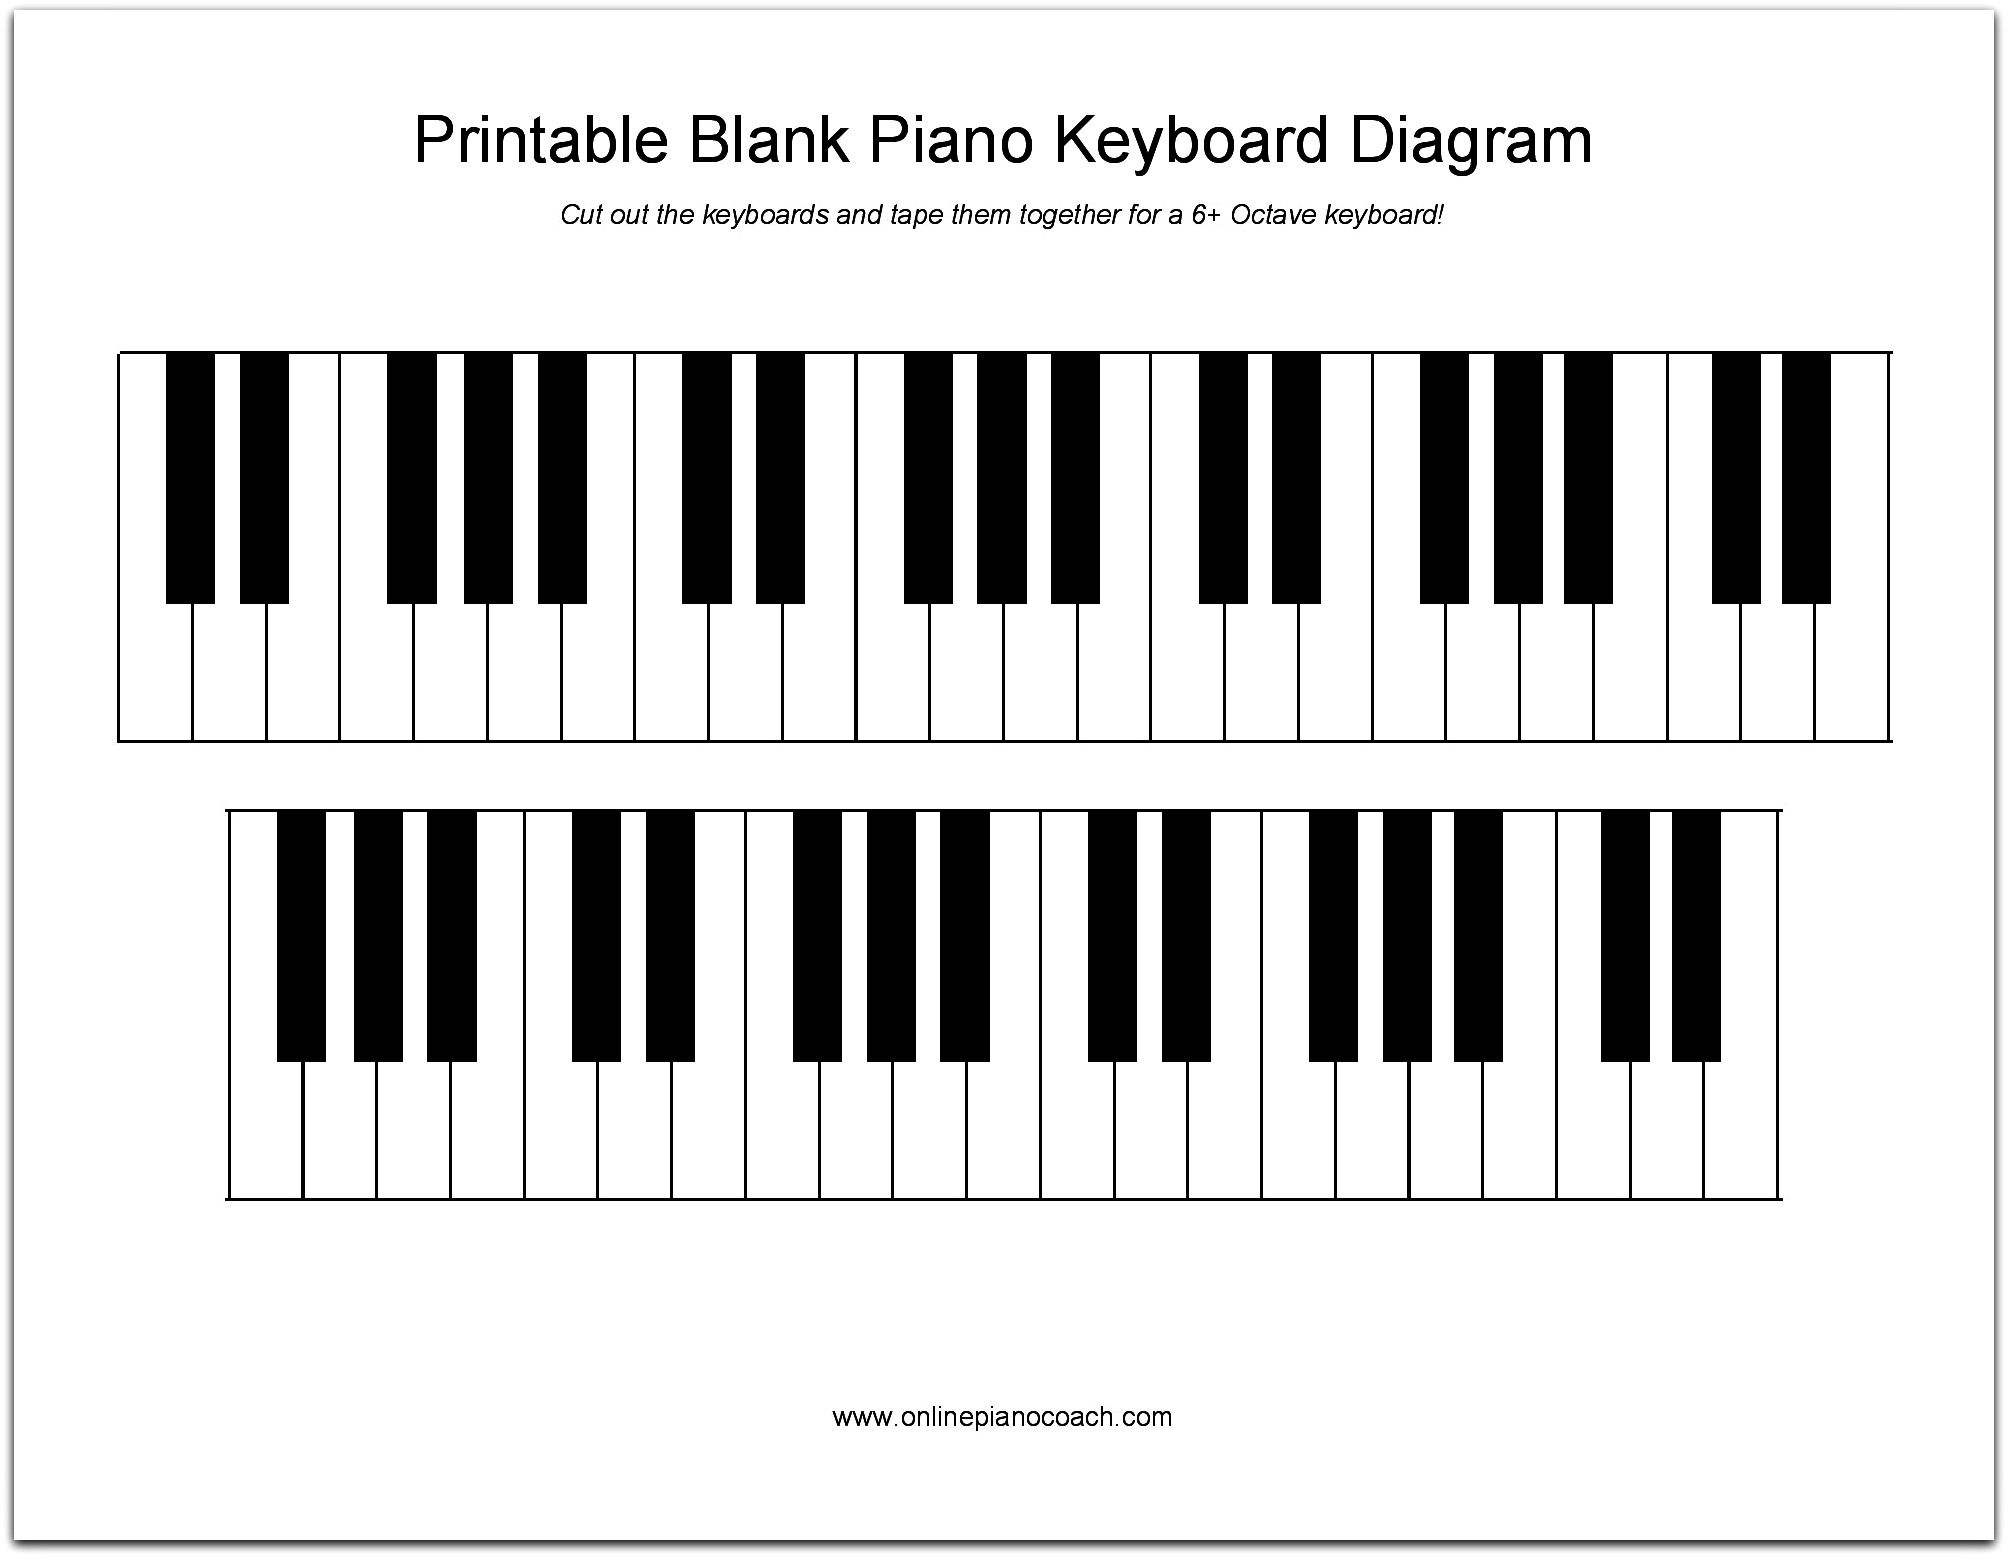 notes on piano keyboard diagram trailer wiring with brakes brake 7 way electric printable lessons for adult